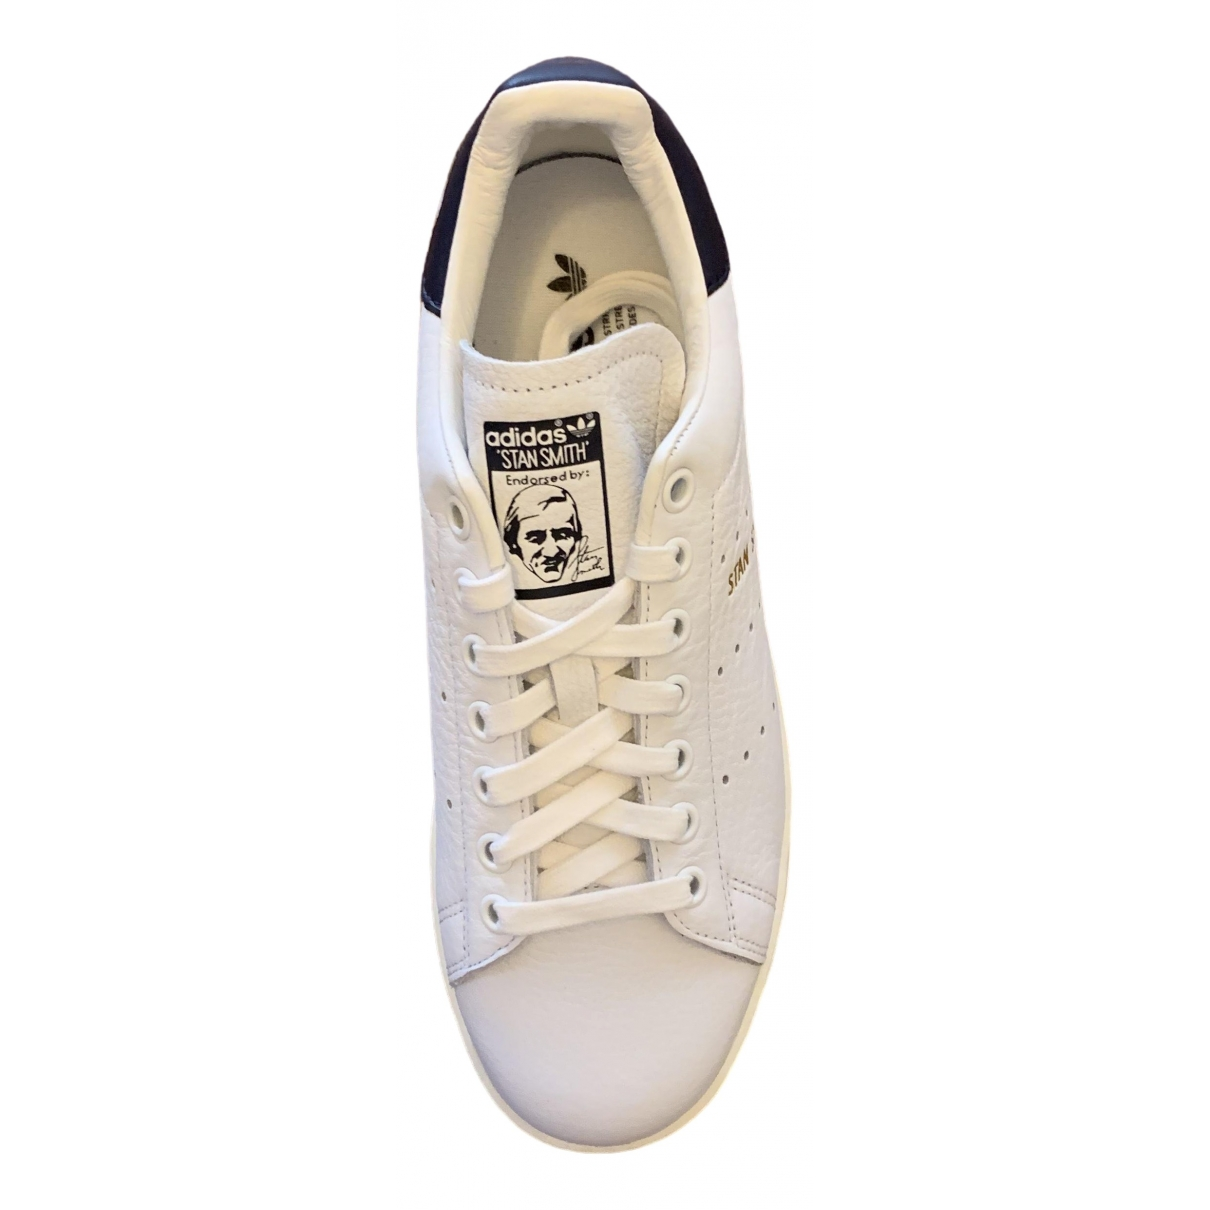 Adidas Stan Smith White Leather Trainers for Women 39.5 IT